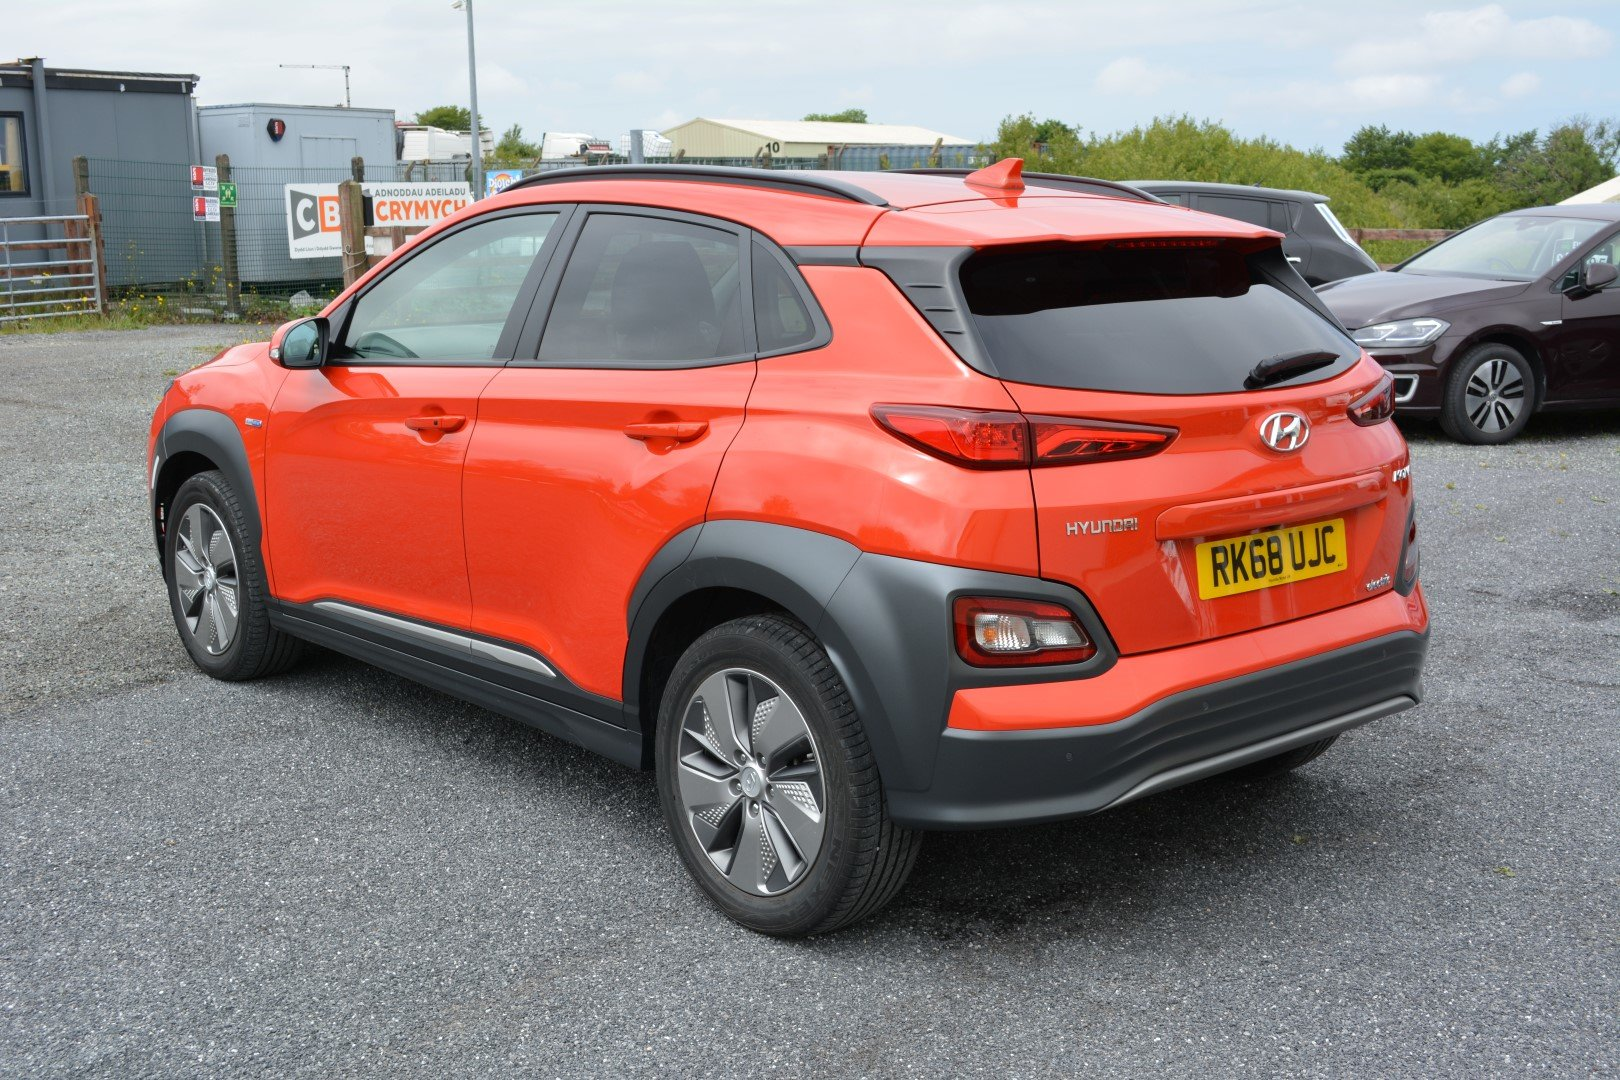 2018 Hyundai Kona Fully Electric - Massive 279 mile range! For Sale (picture 2 of 6)